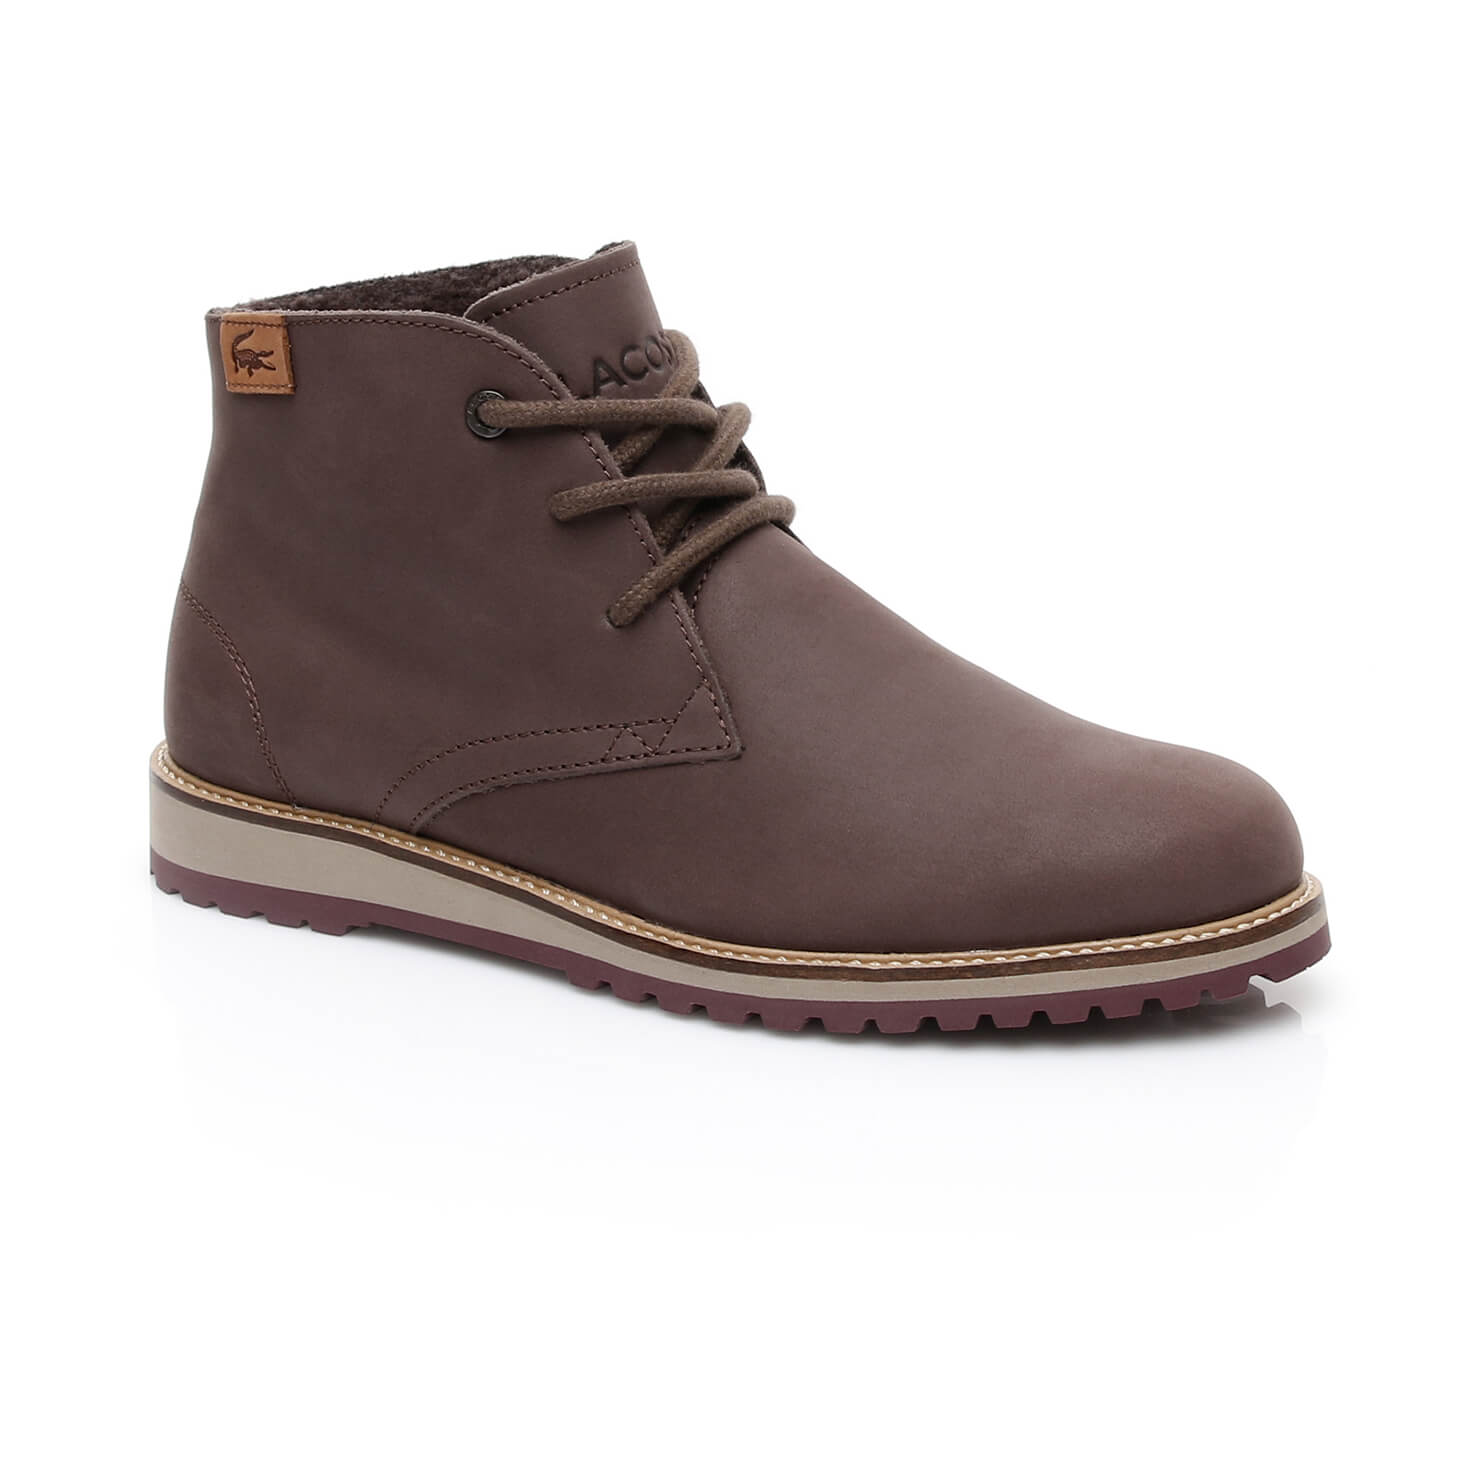 Lacoste Manette 317 1 Damskie Boots